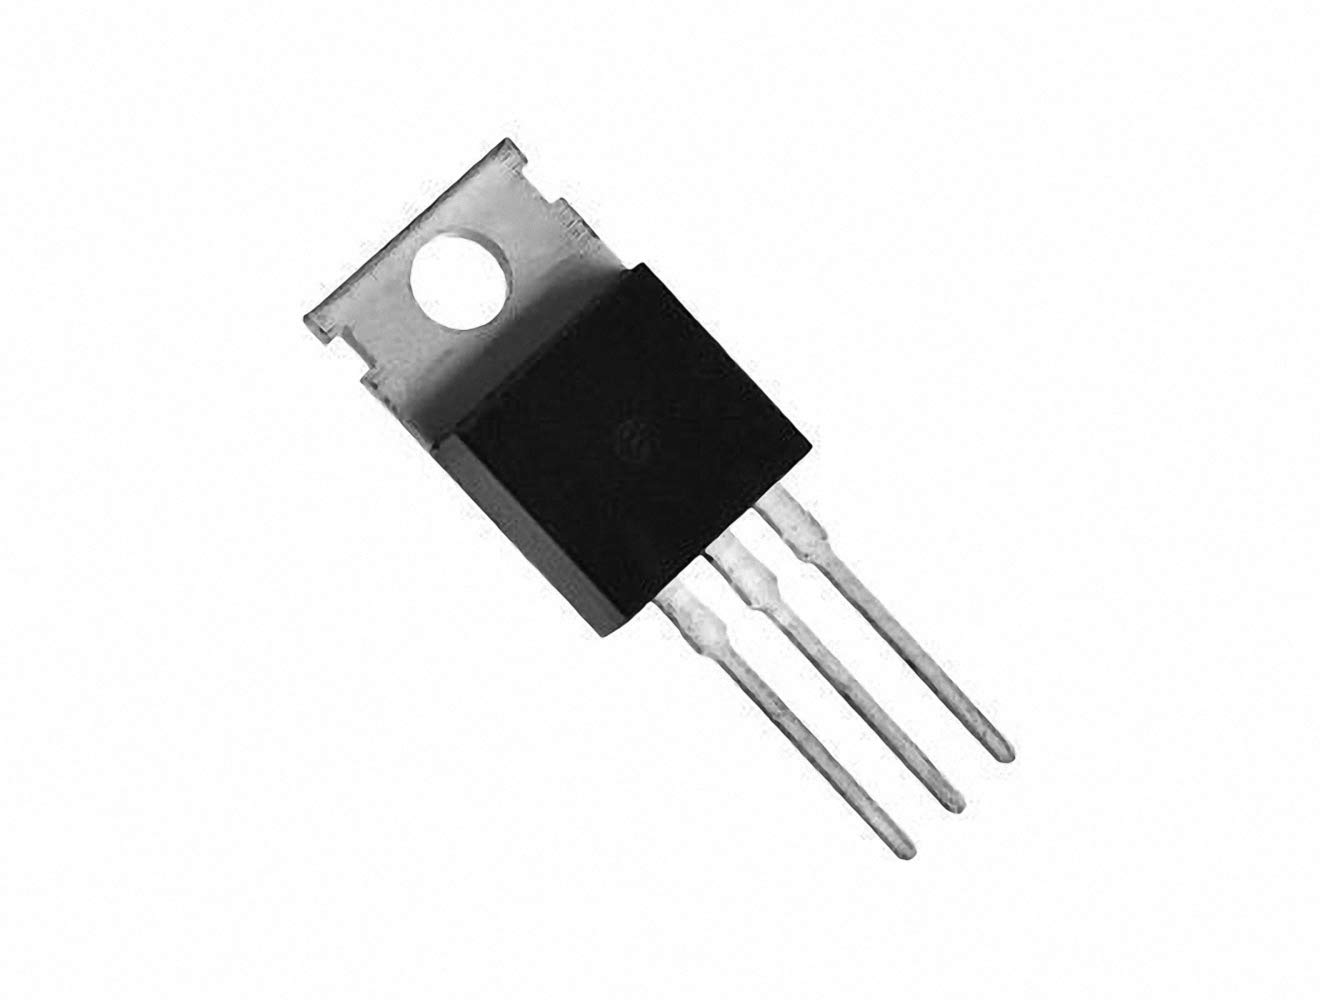 10pcs/lot IRFZ44N IRFZ44 MOSFET 49A 55V TO-220 in Stock